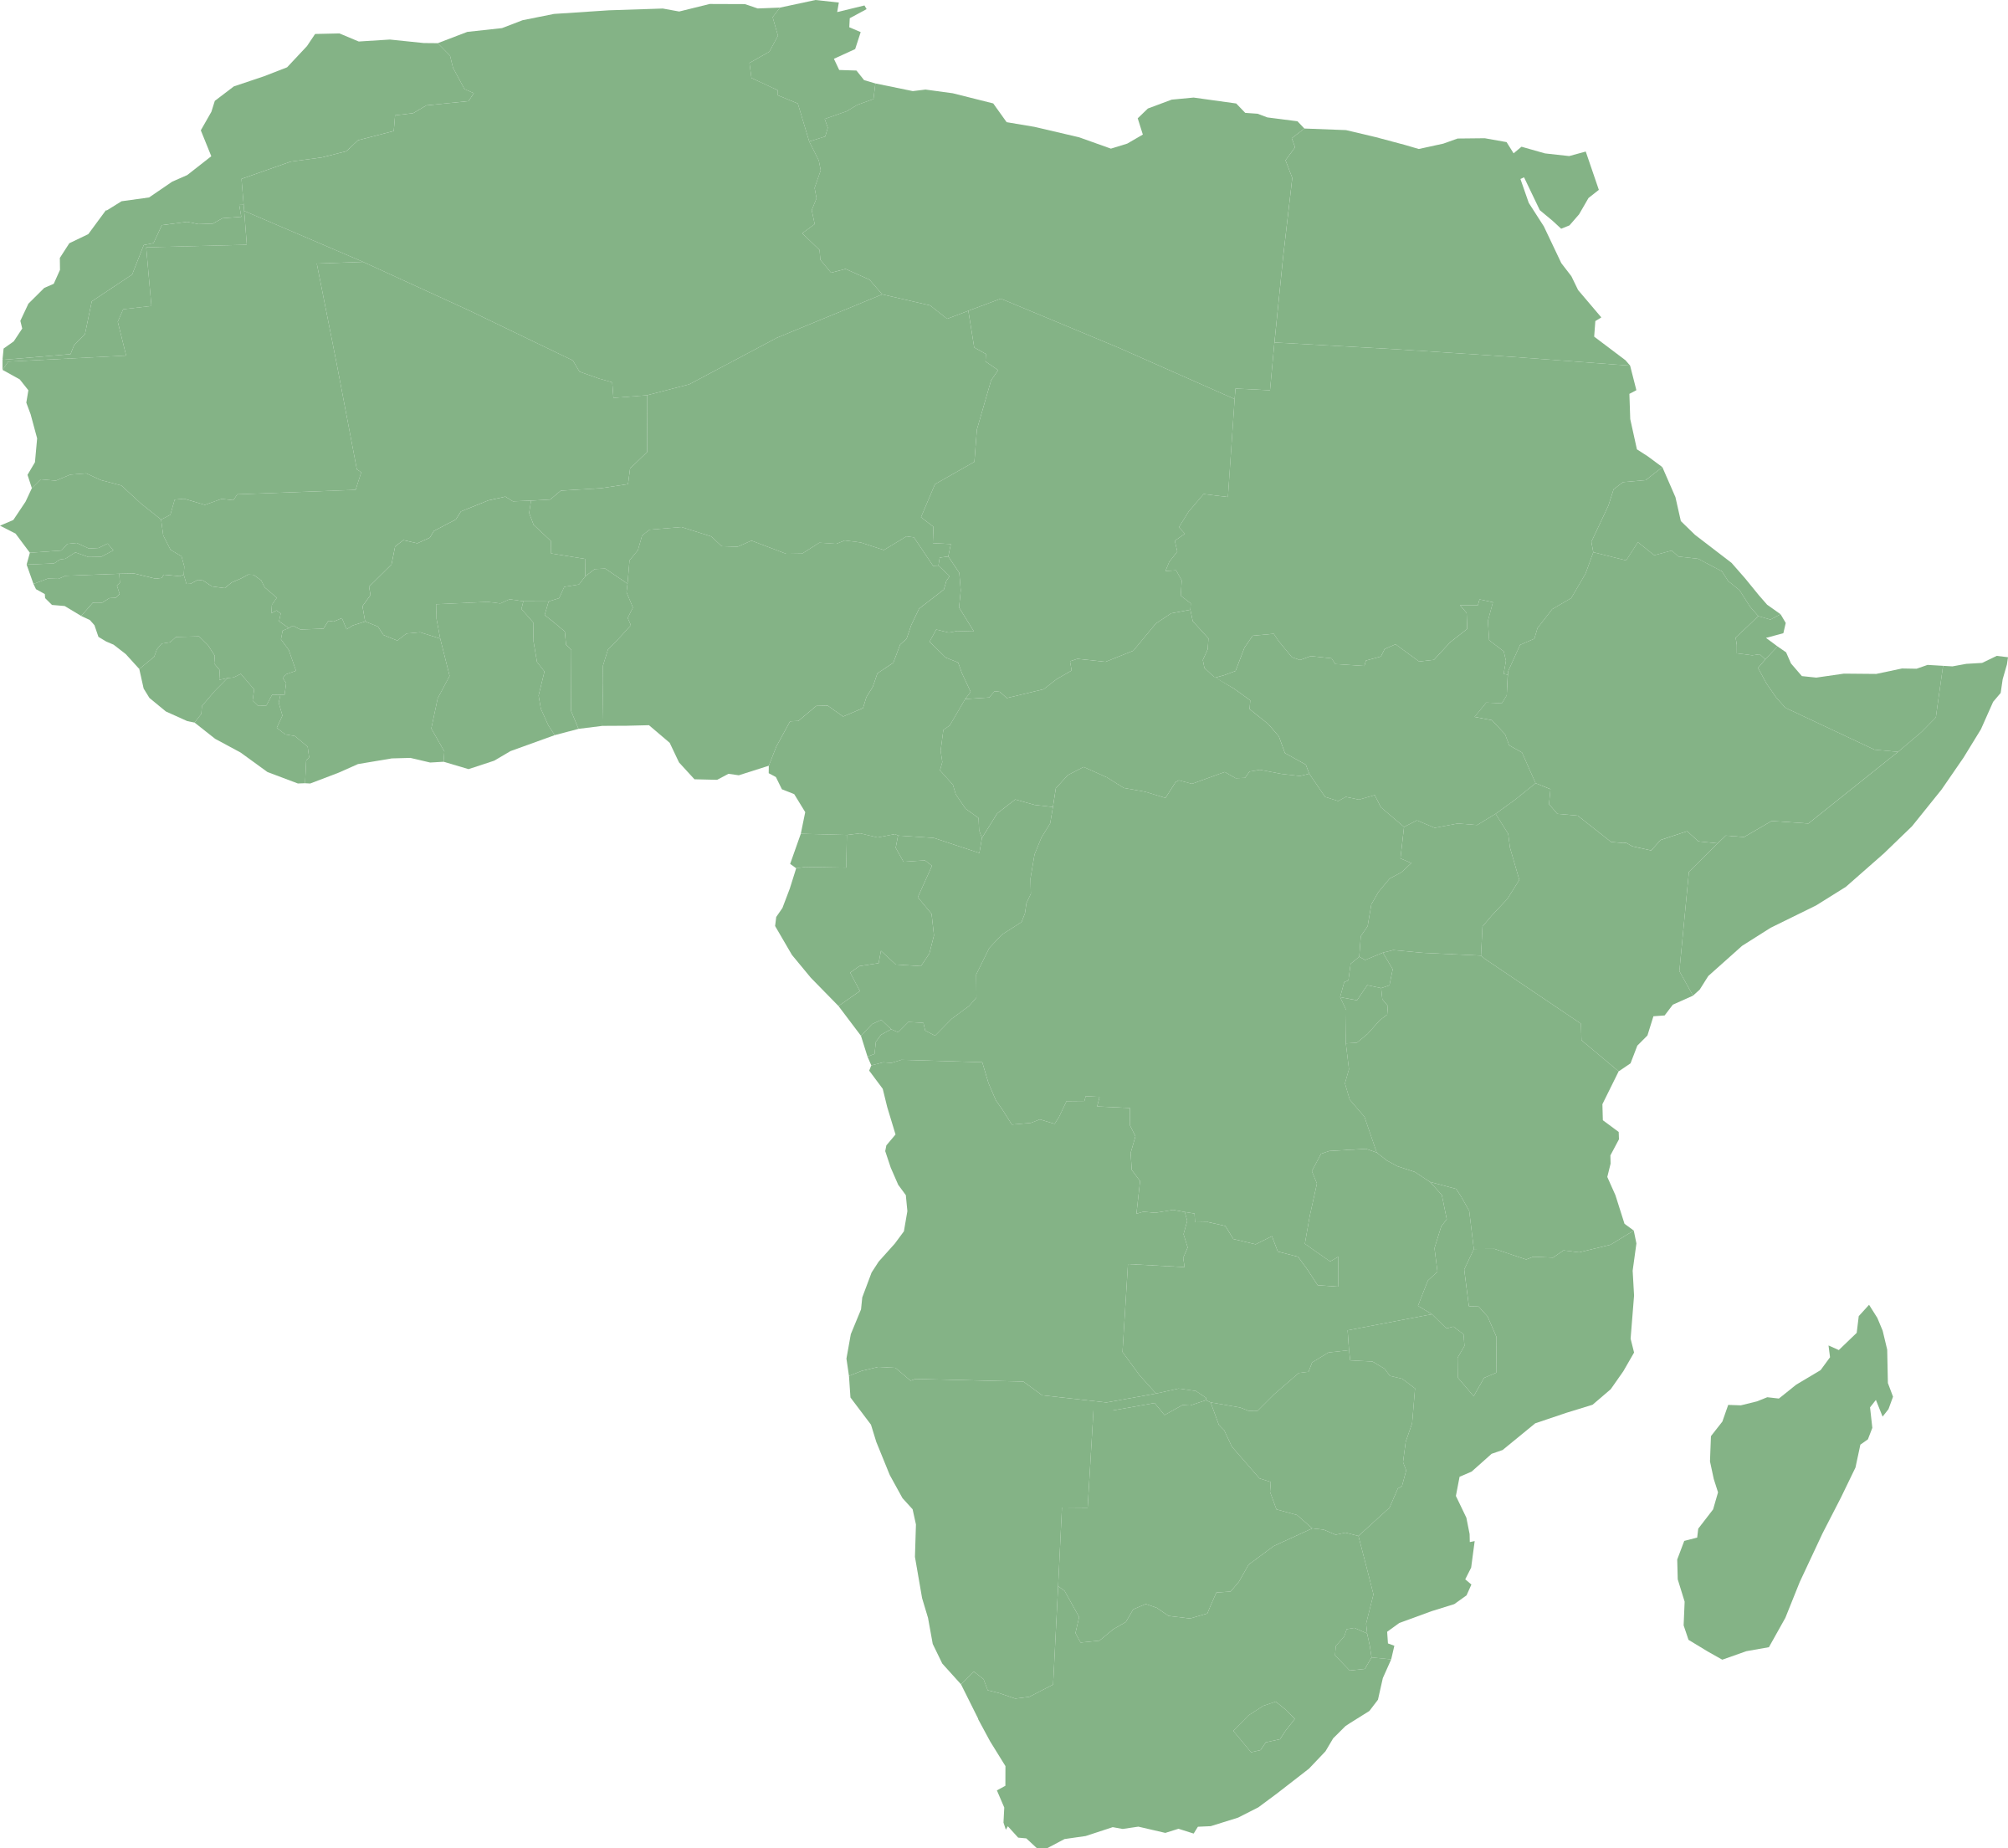 Africa map png. Of with countries in